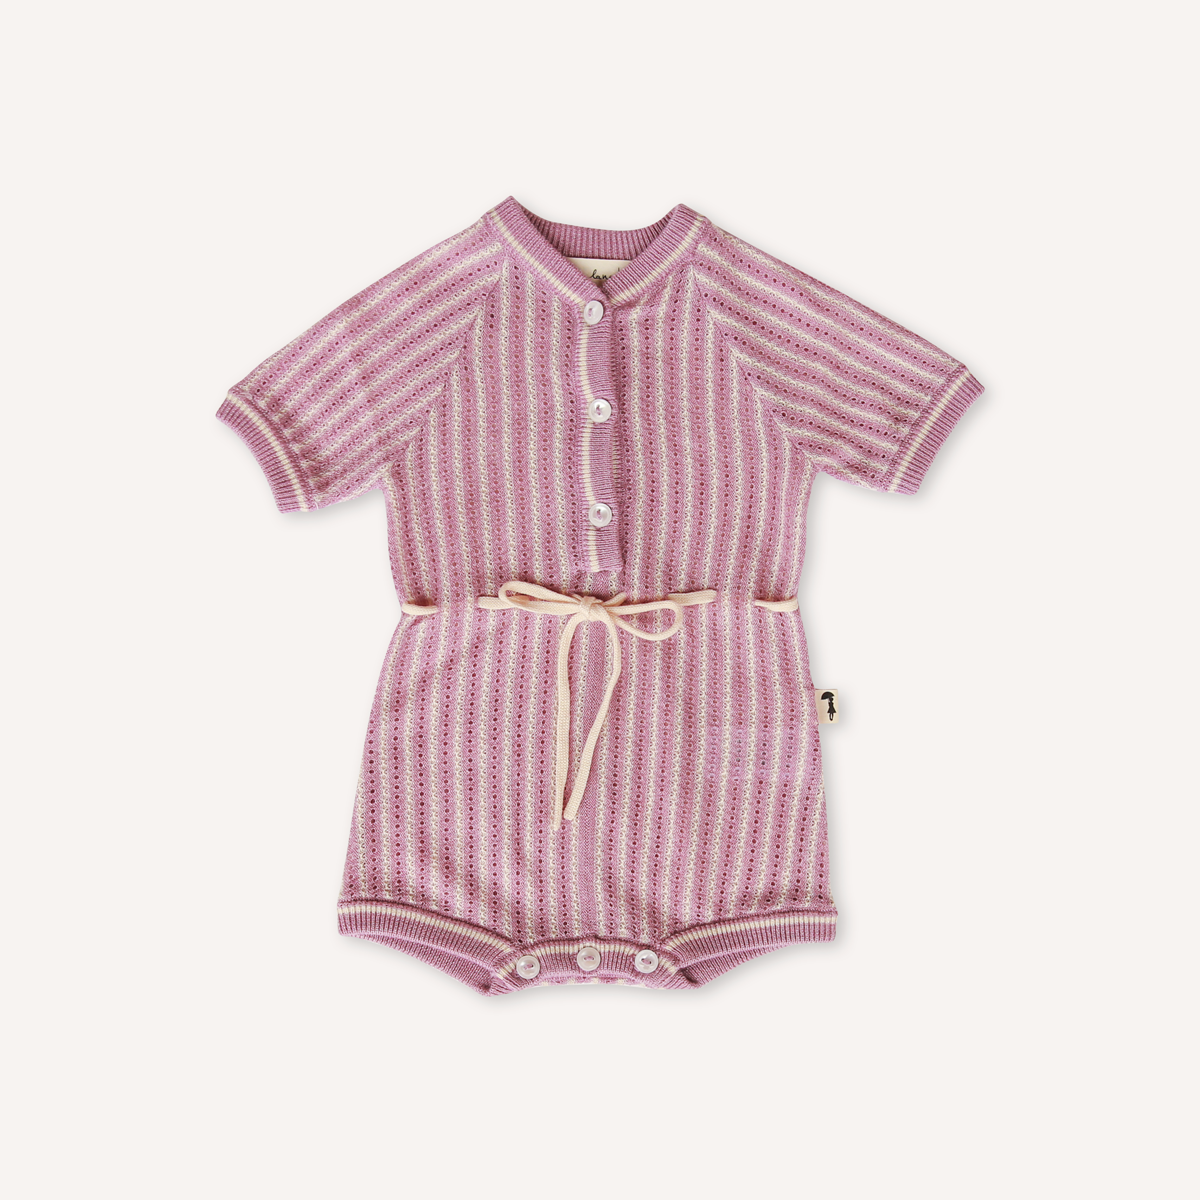 US stockist of Lacey Lane's knit violet romper.  Buttons down chest, with buttons at crotch and functional white drawstring at waist.  Beautiful violet and white stripes.